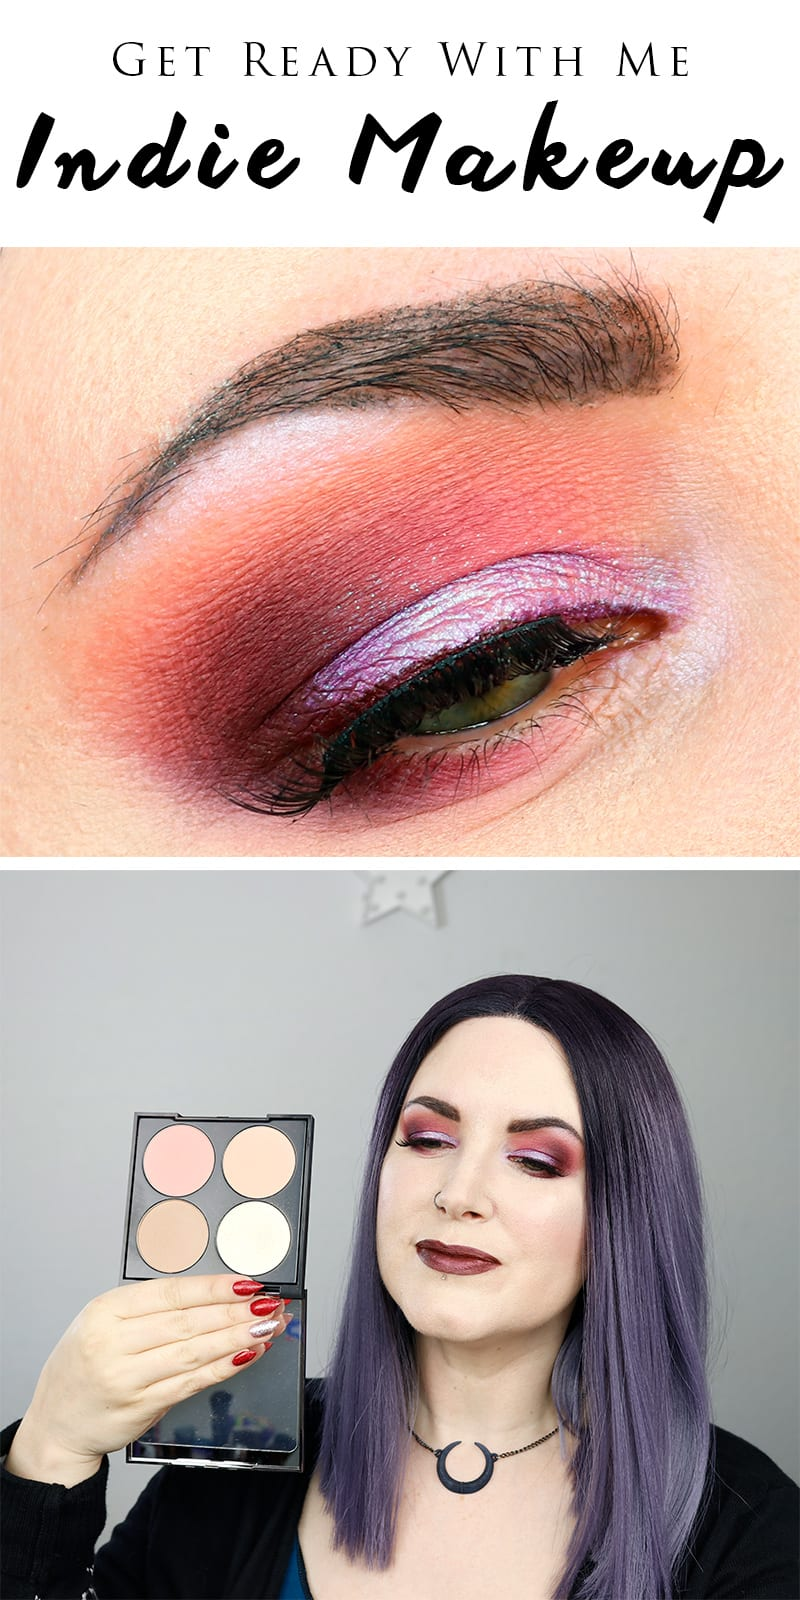 Get Ready With Me Indie Makeup - a burgundy and purple duochrome look with Makeup Geek, Suva Beauty, Aromaleigh and Melt Cosmetics.